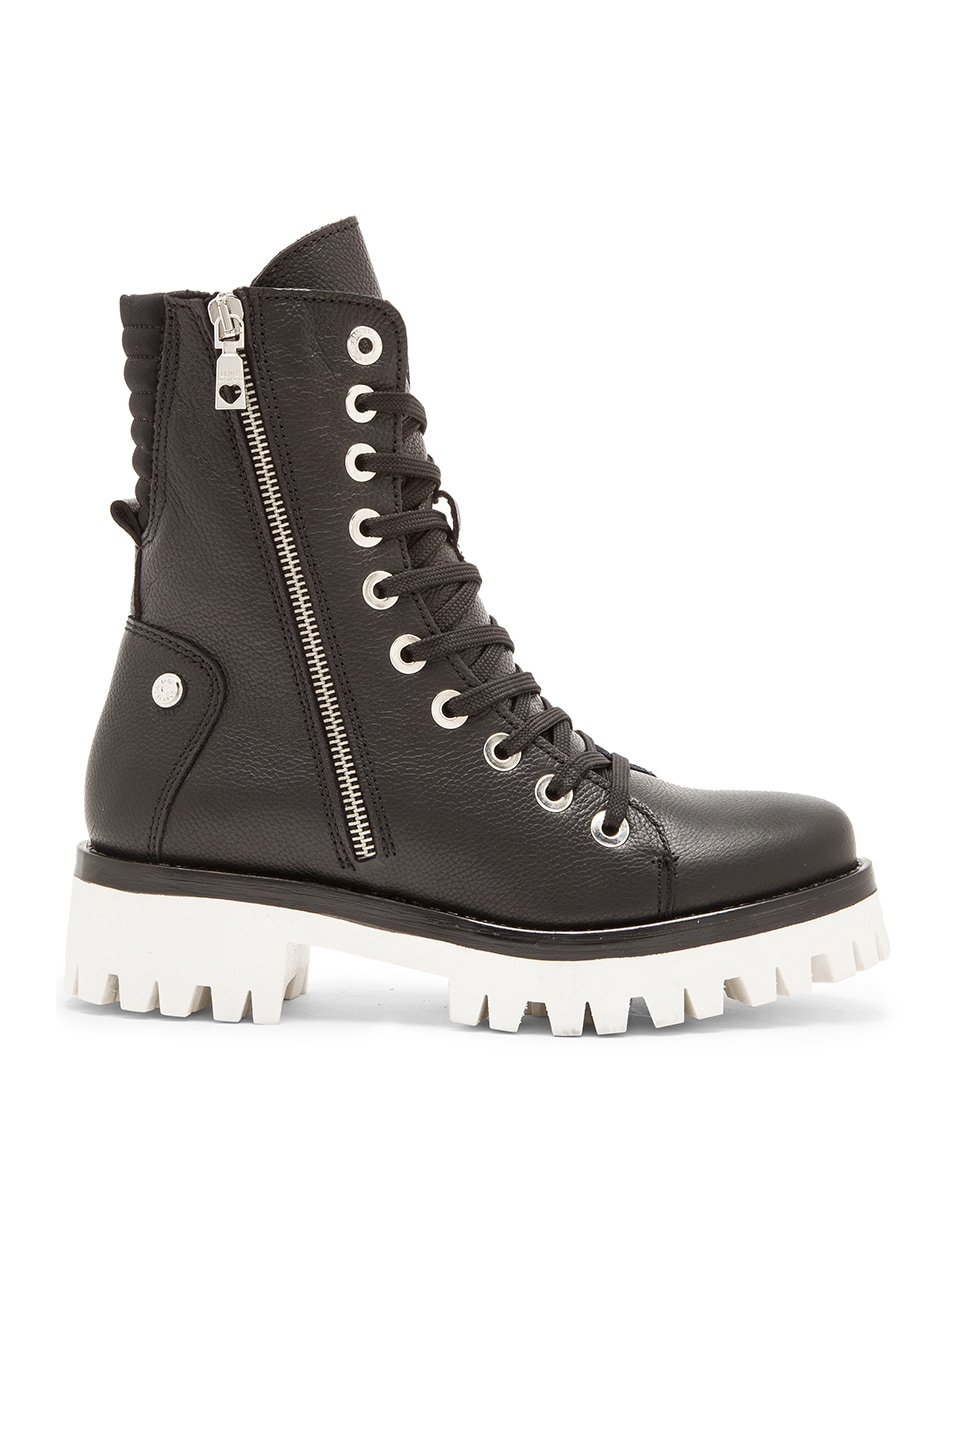 Love Moschino Military Boot in Black